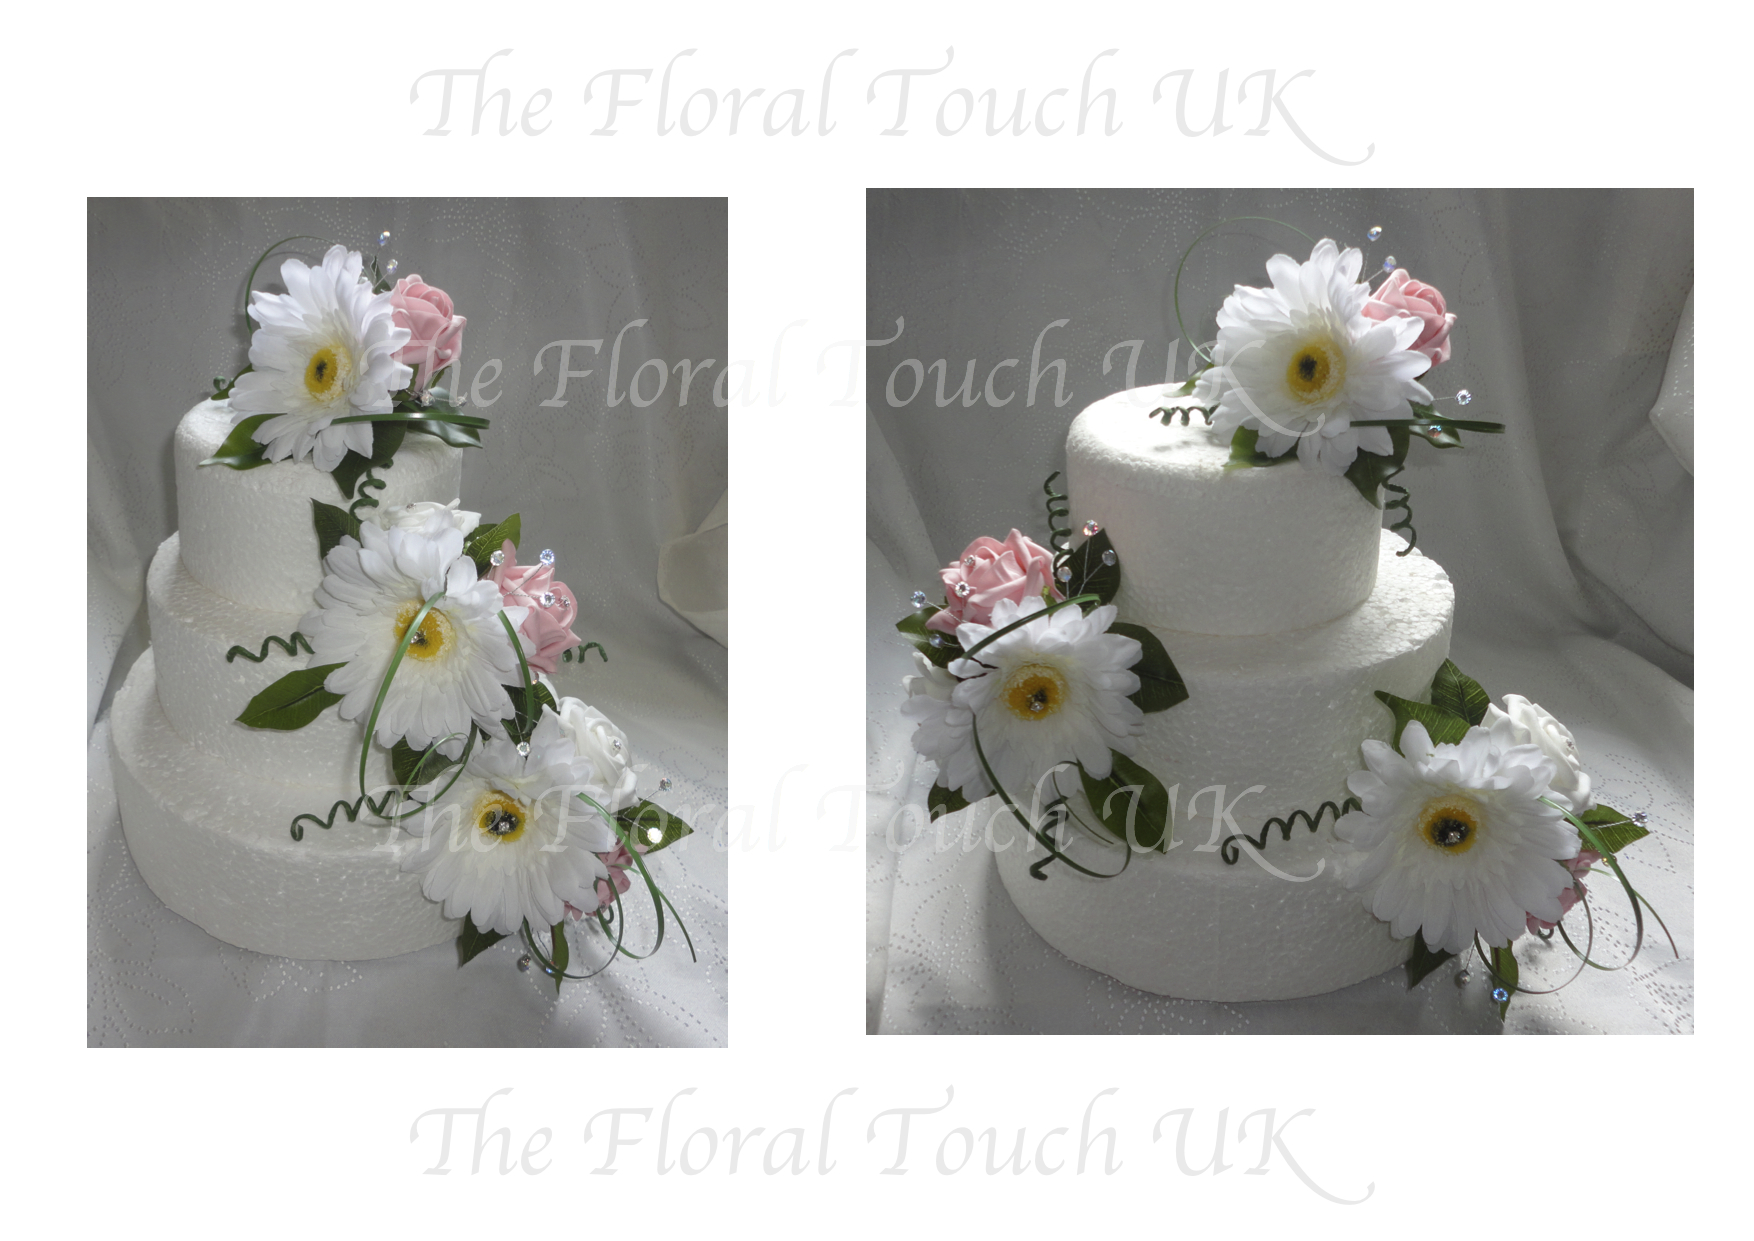 Cake toppers the floral touch uk cake tier displays gerbera rosecake tier displays mightylinksfo